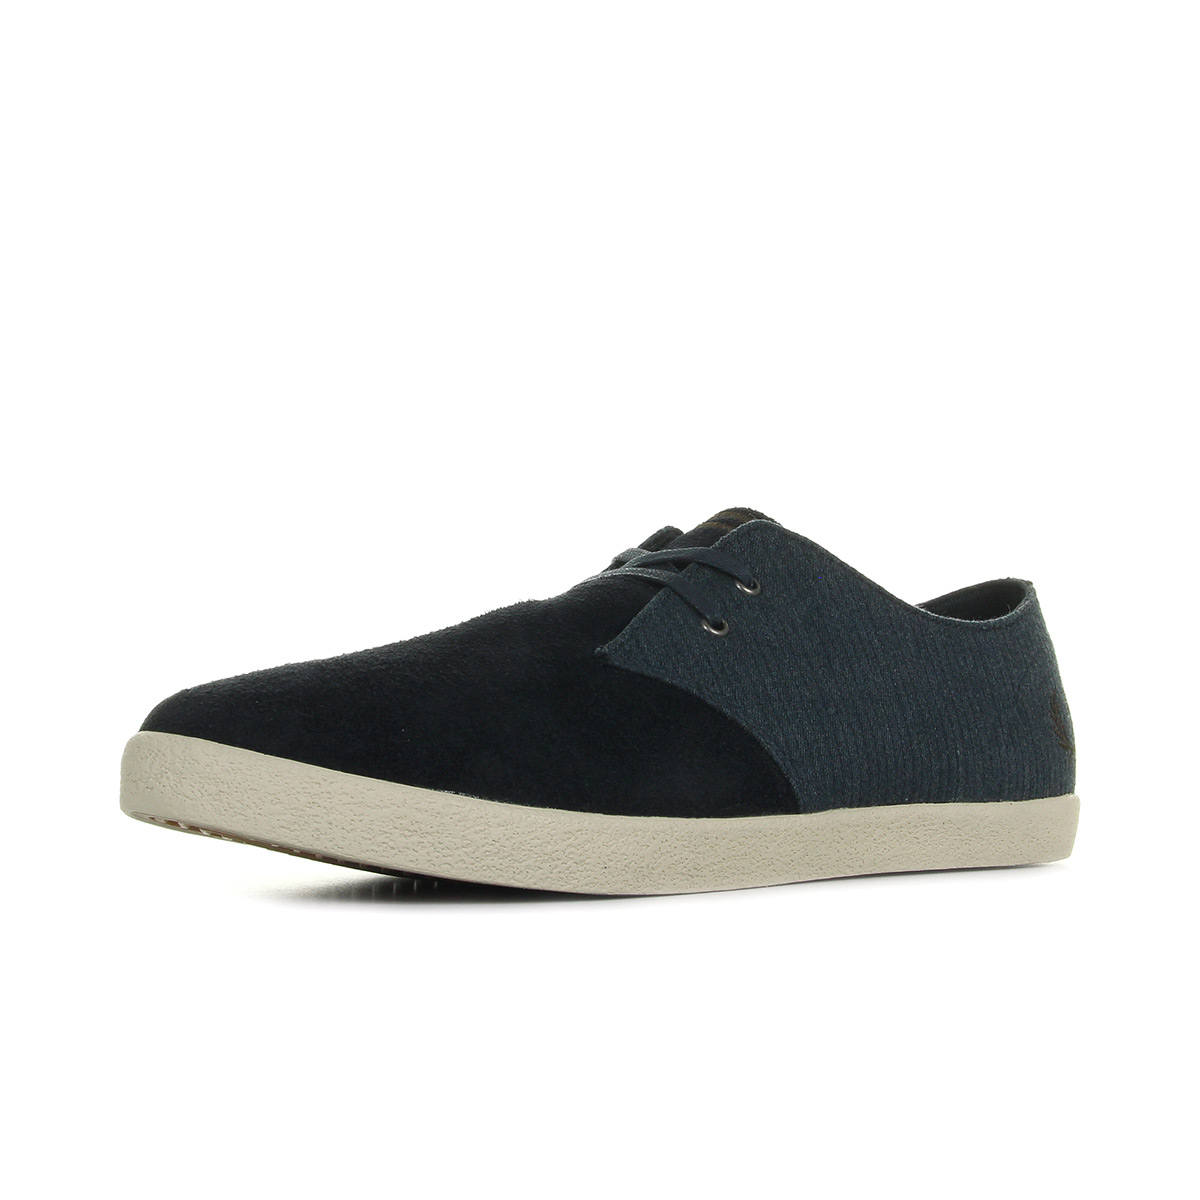 Baskets Fred Perry Byron Low Suede Navy Falcon Grey os1tdy9